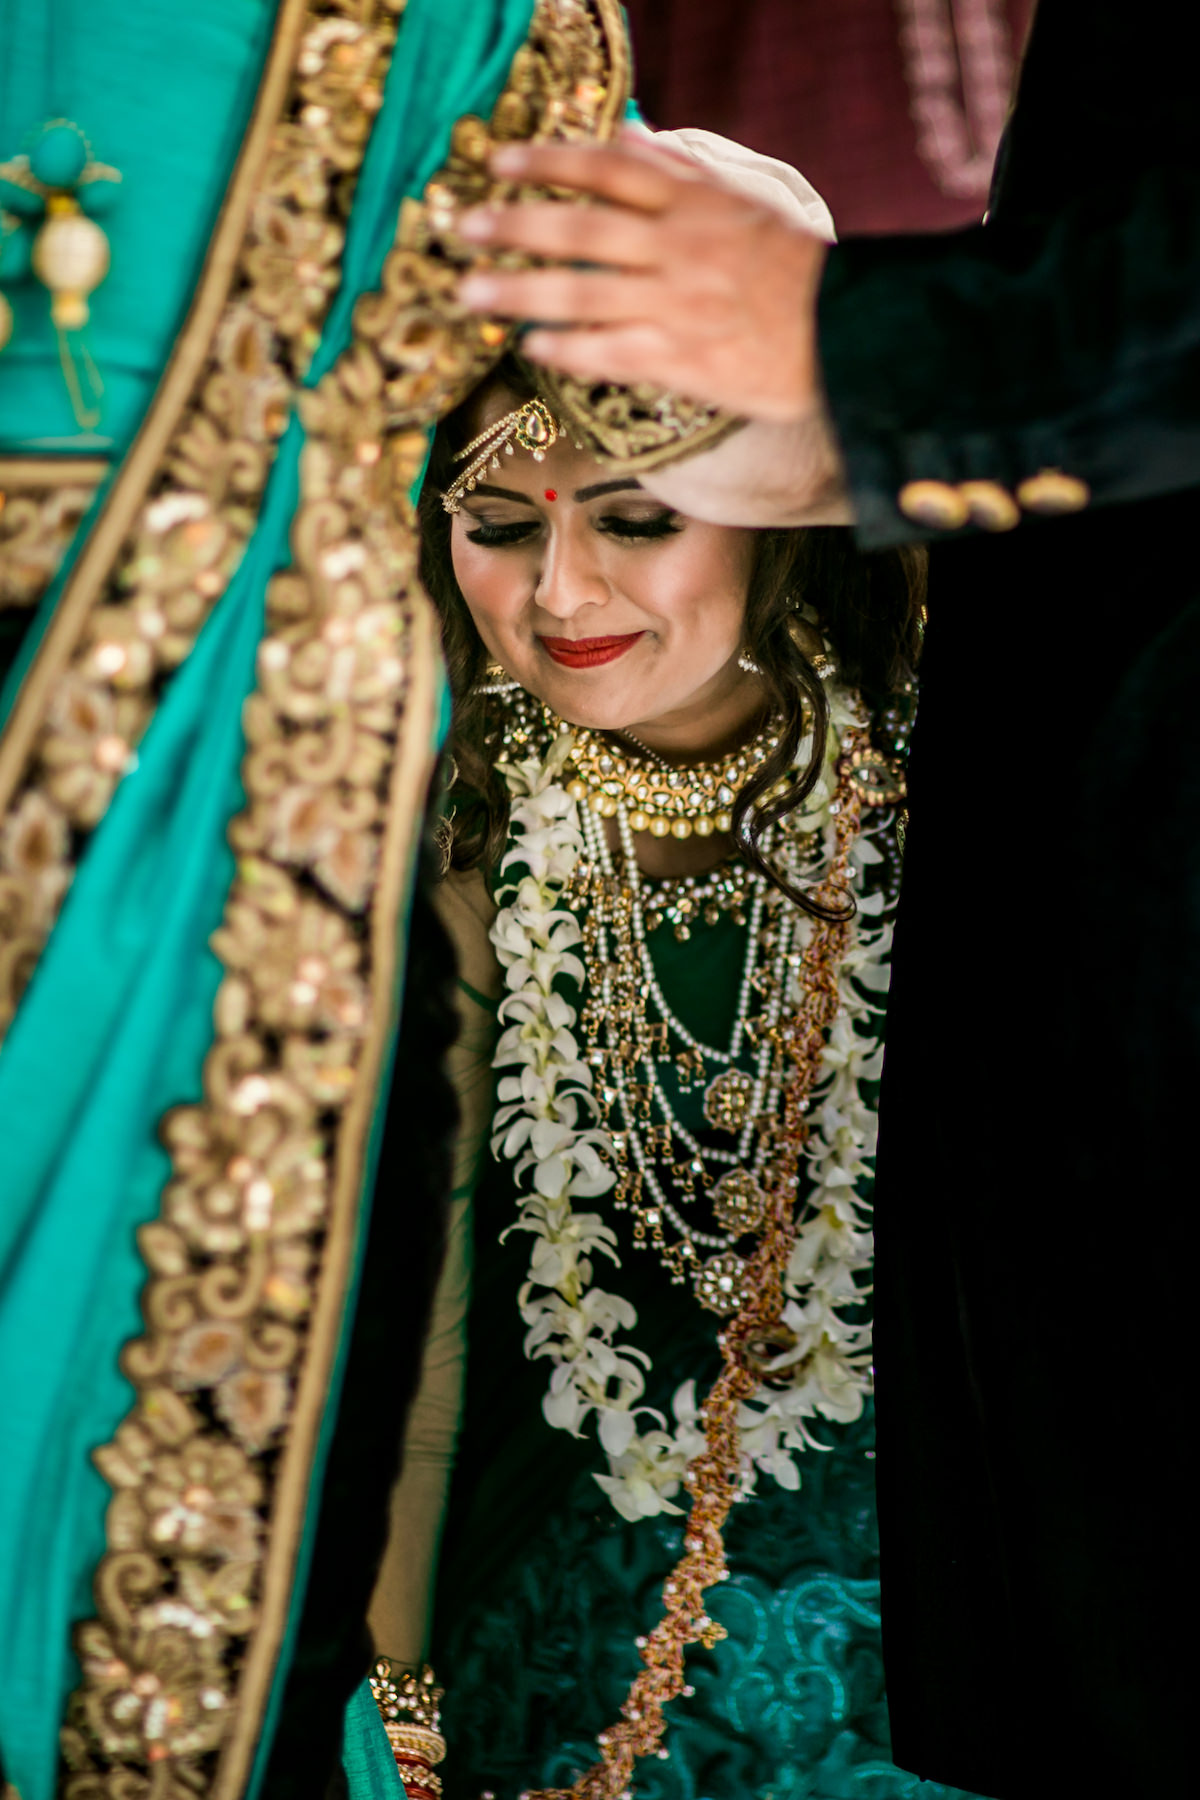 South asian wedding - Nadia D Photo